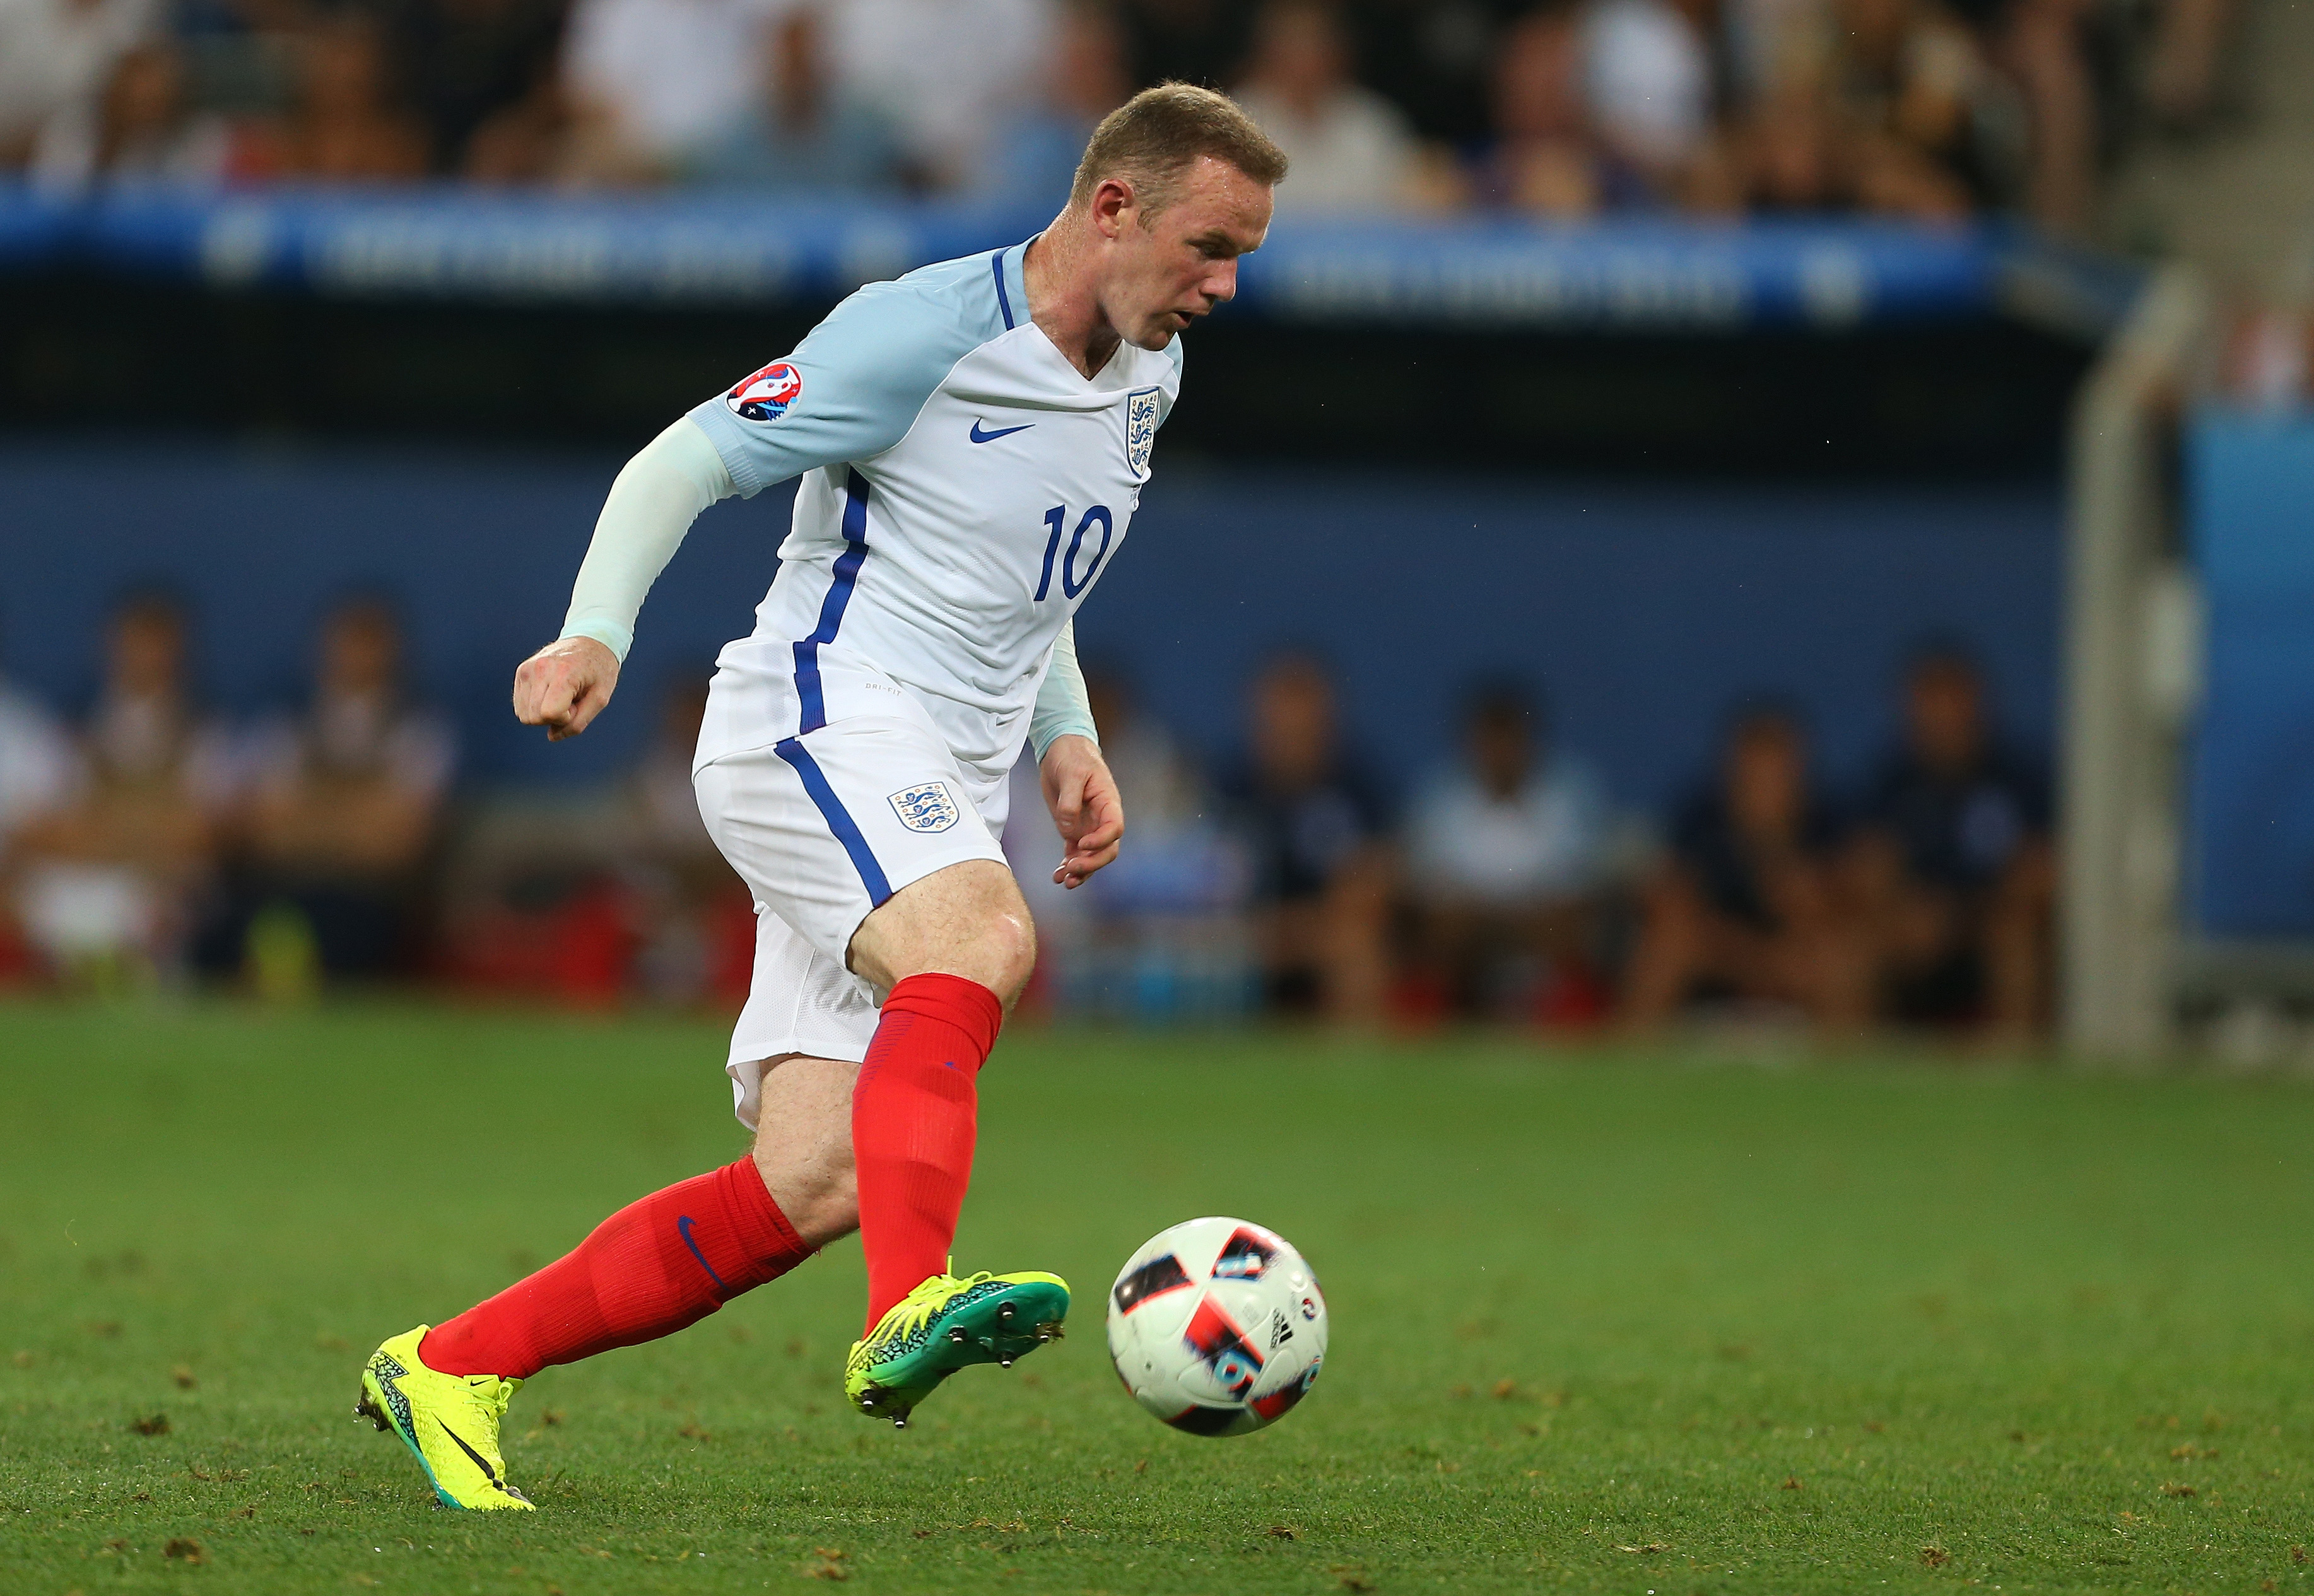 England will begin their quest for World Cup 2018 qualification against Slovakia